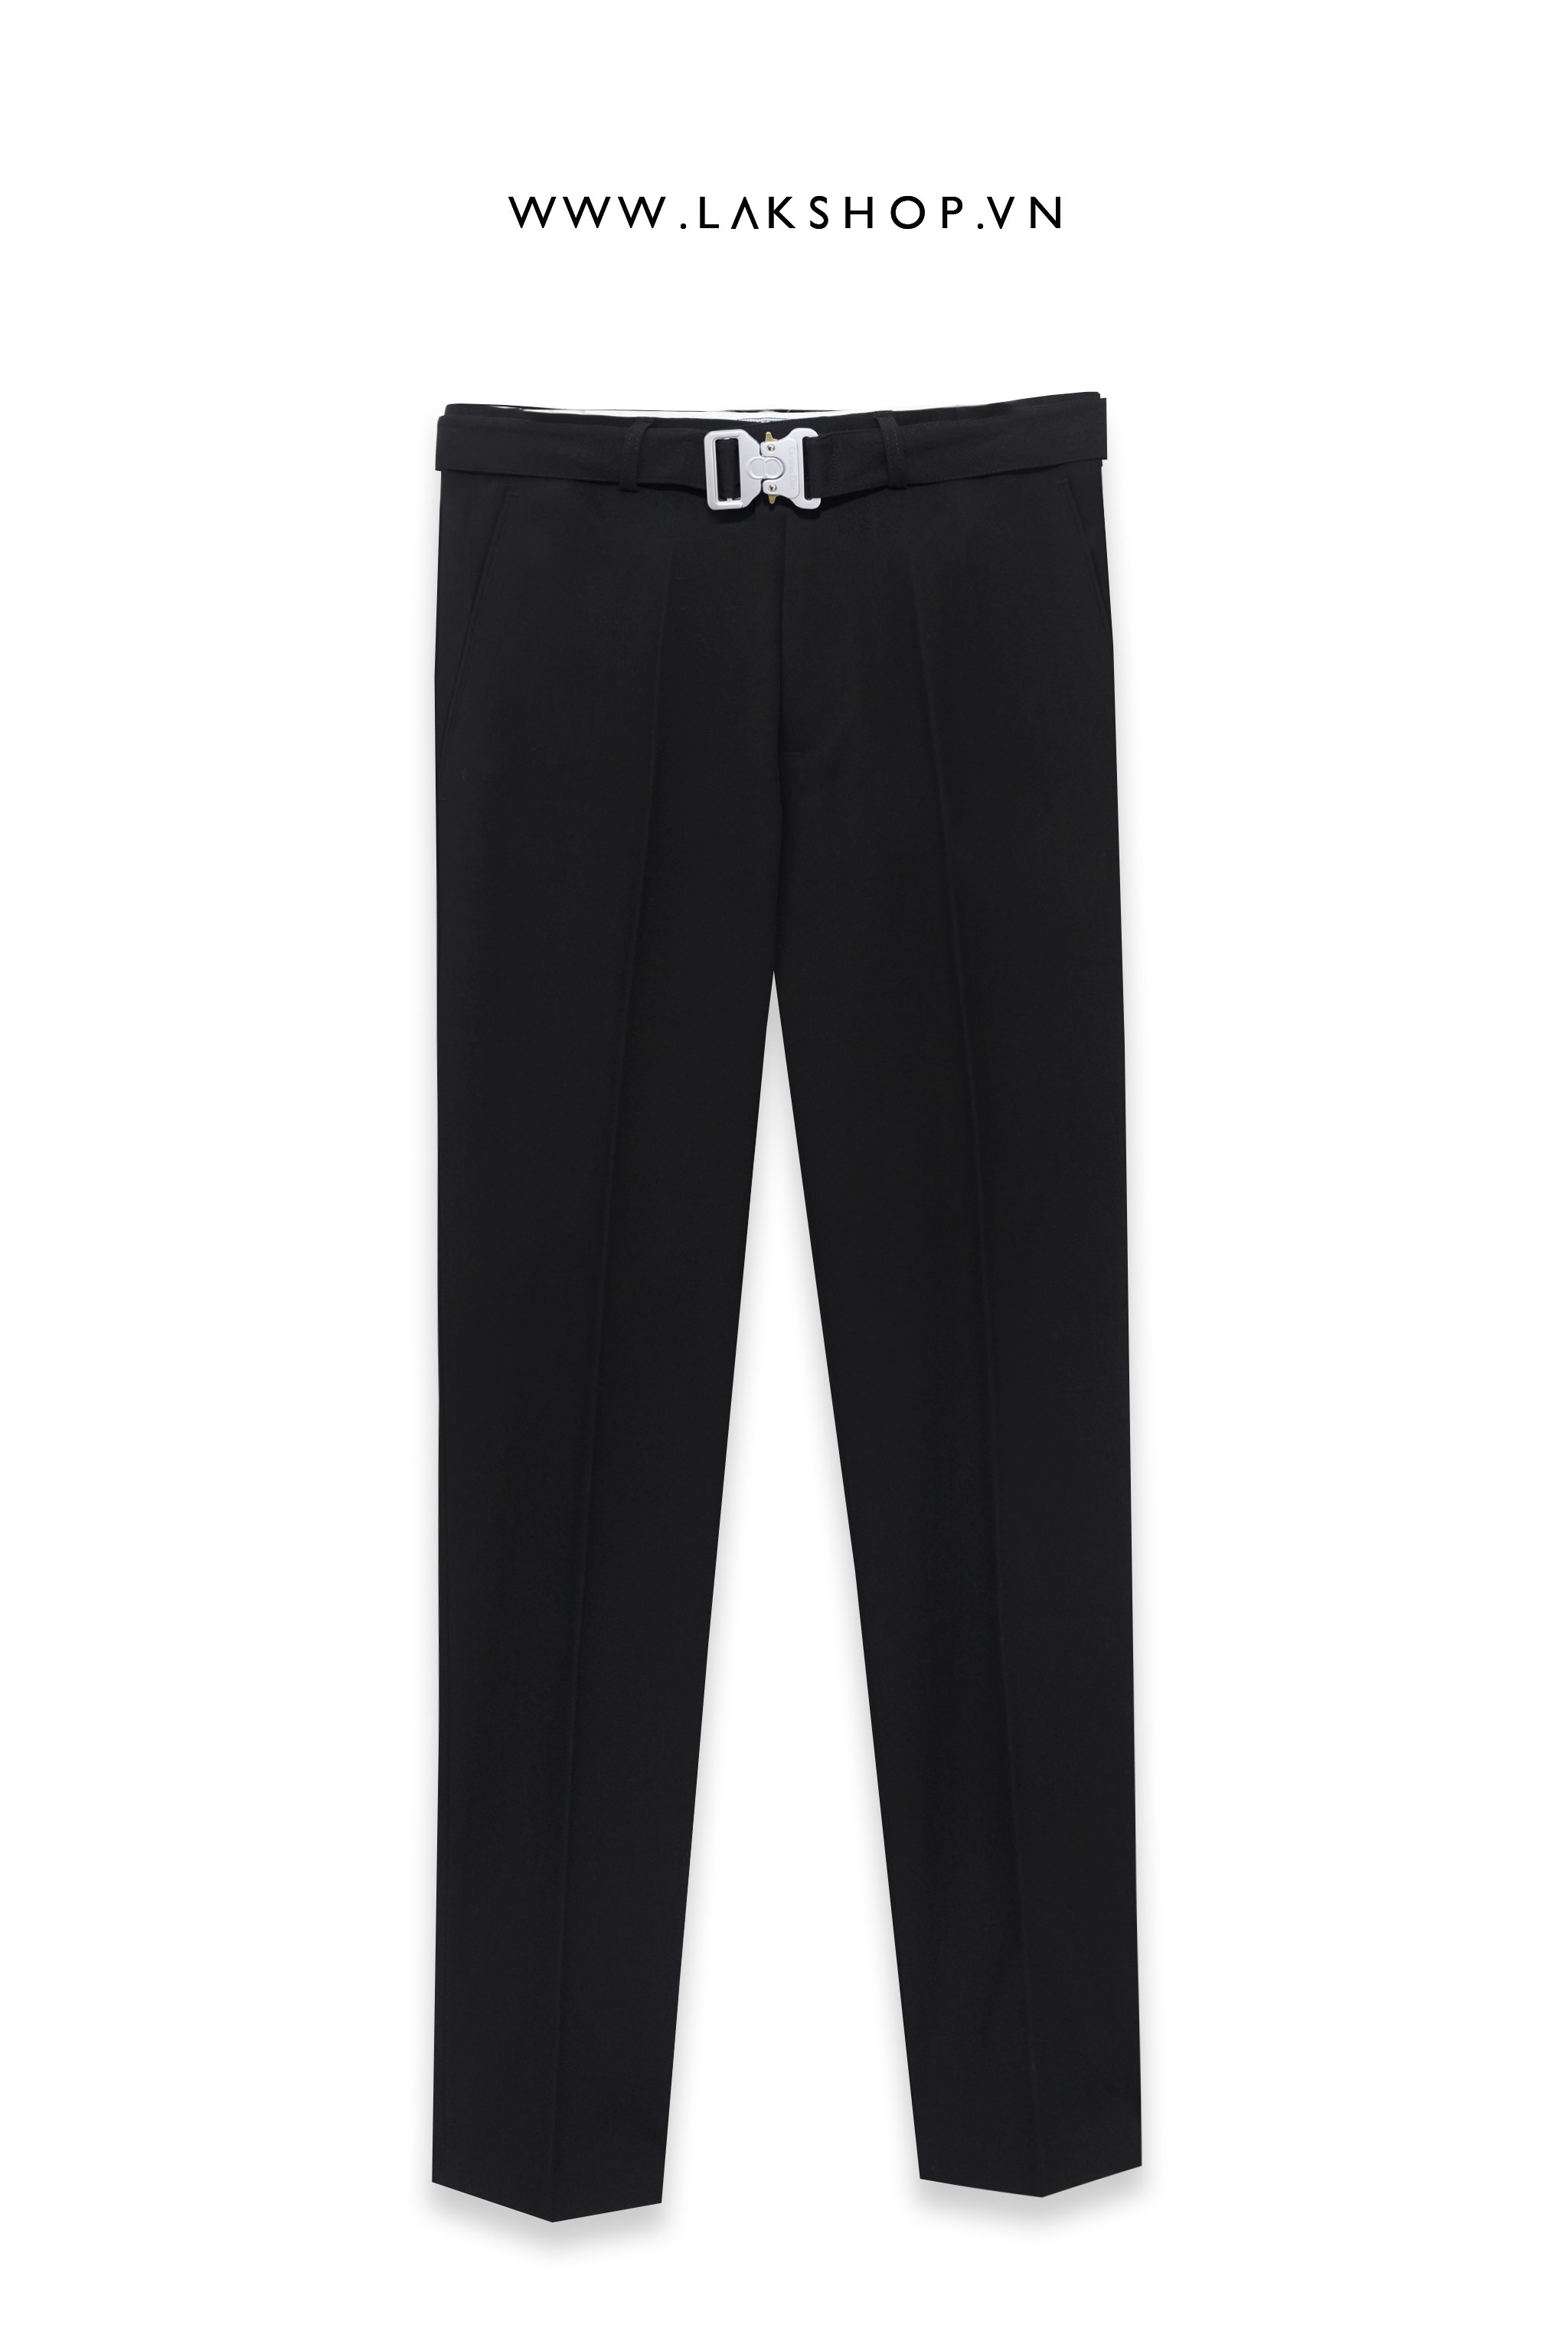 Dior Pants With Removable Harness Buckle Belt